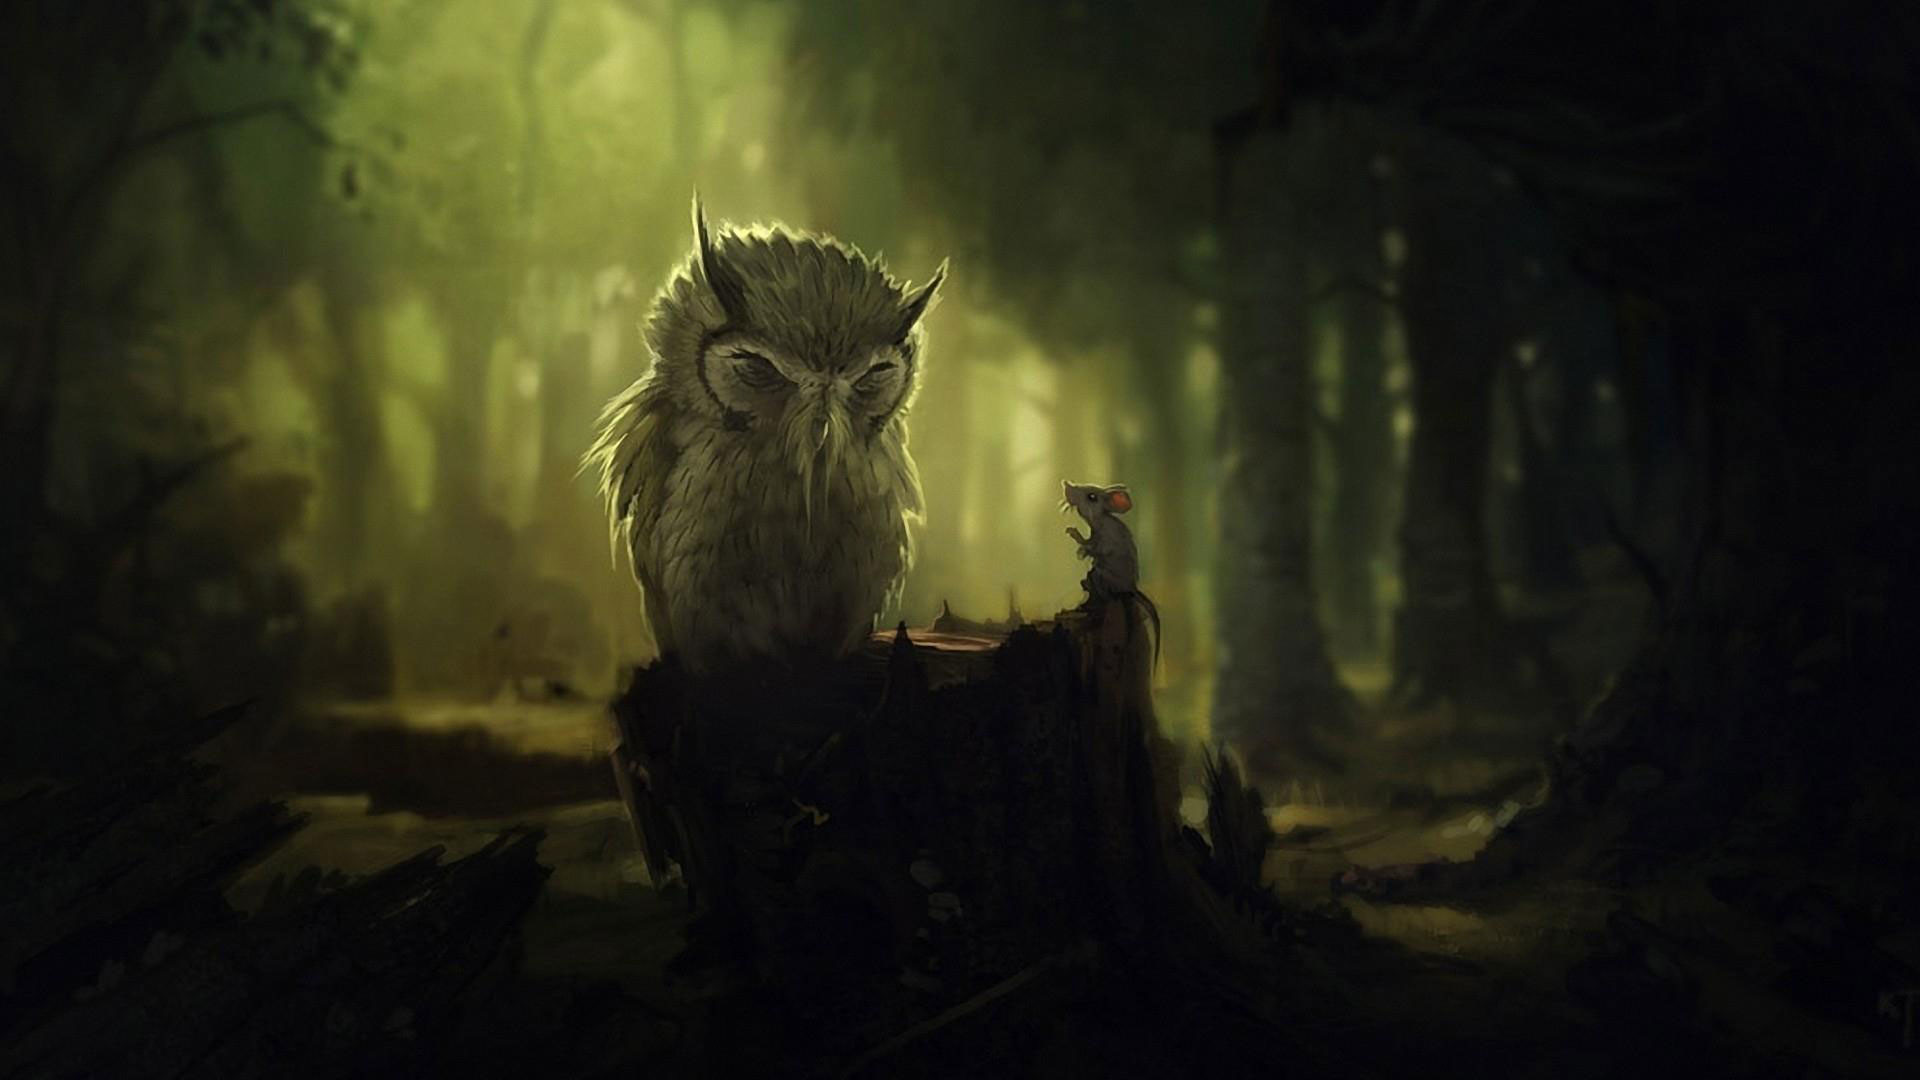 1920x1080 hd pics photos beautiful animated owl mouse rat forest attractive hd  quality desktop background wallpaper